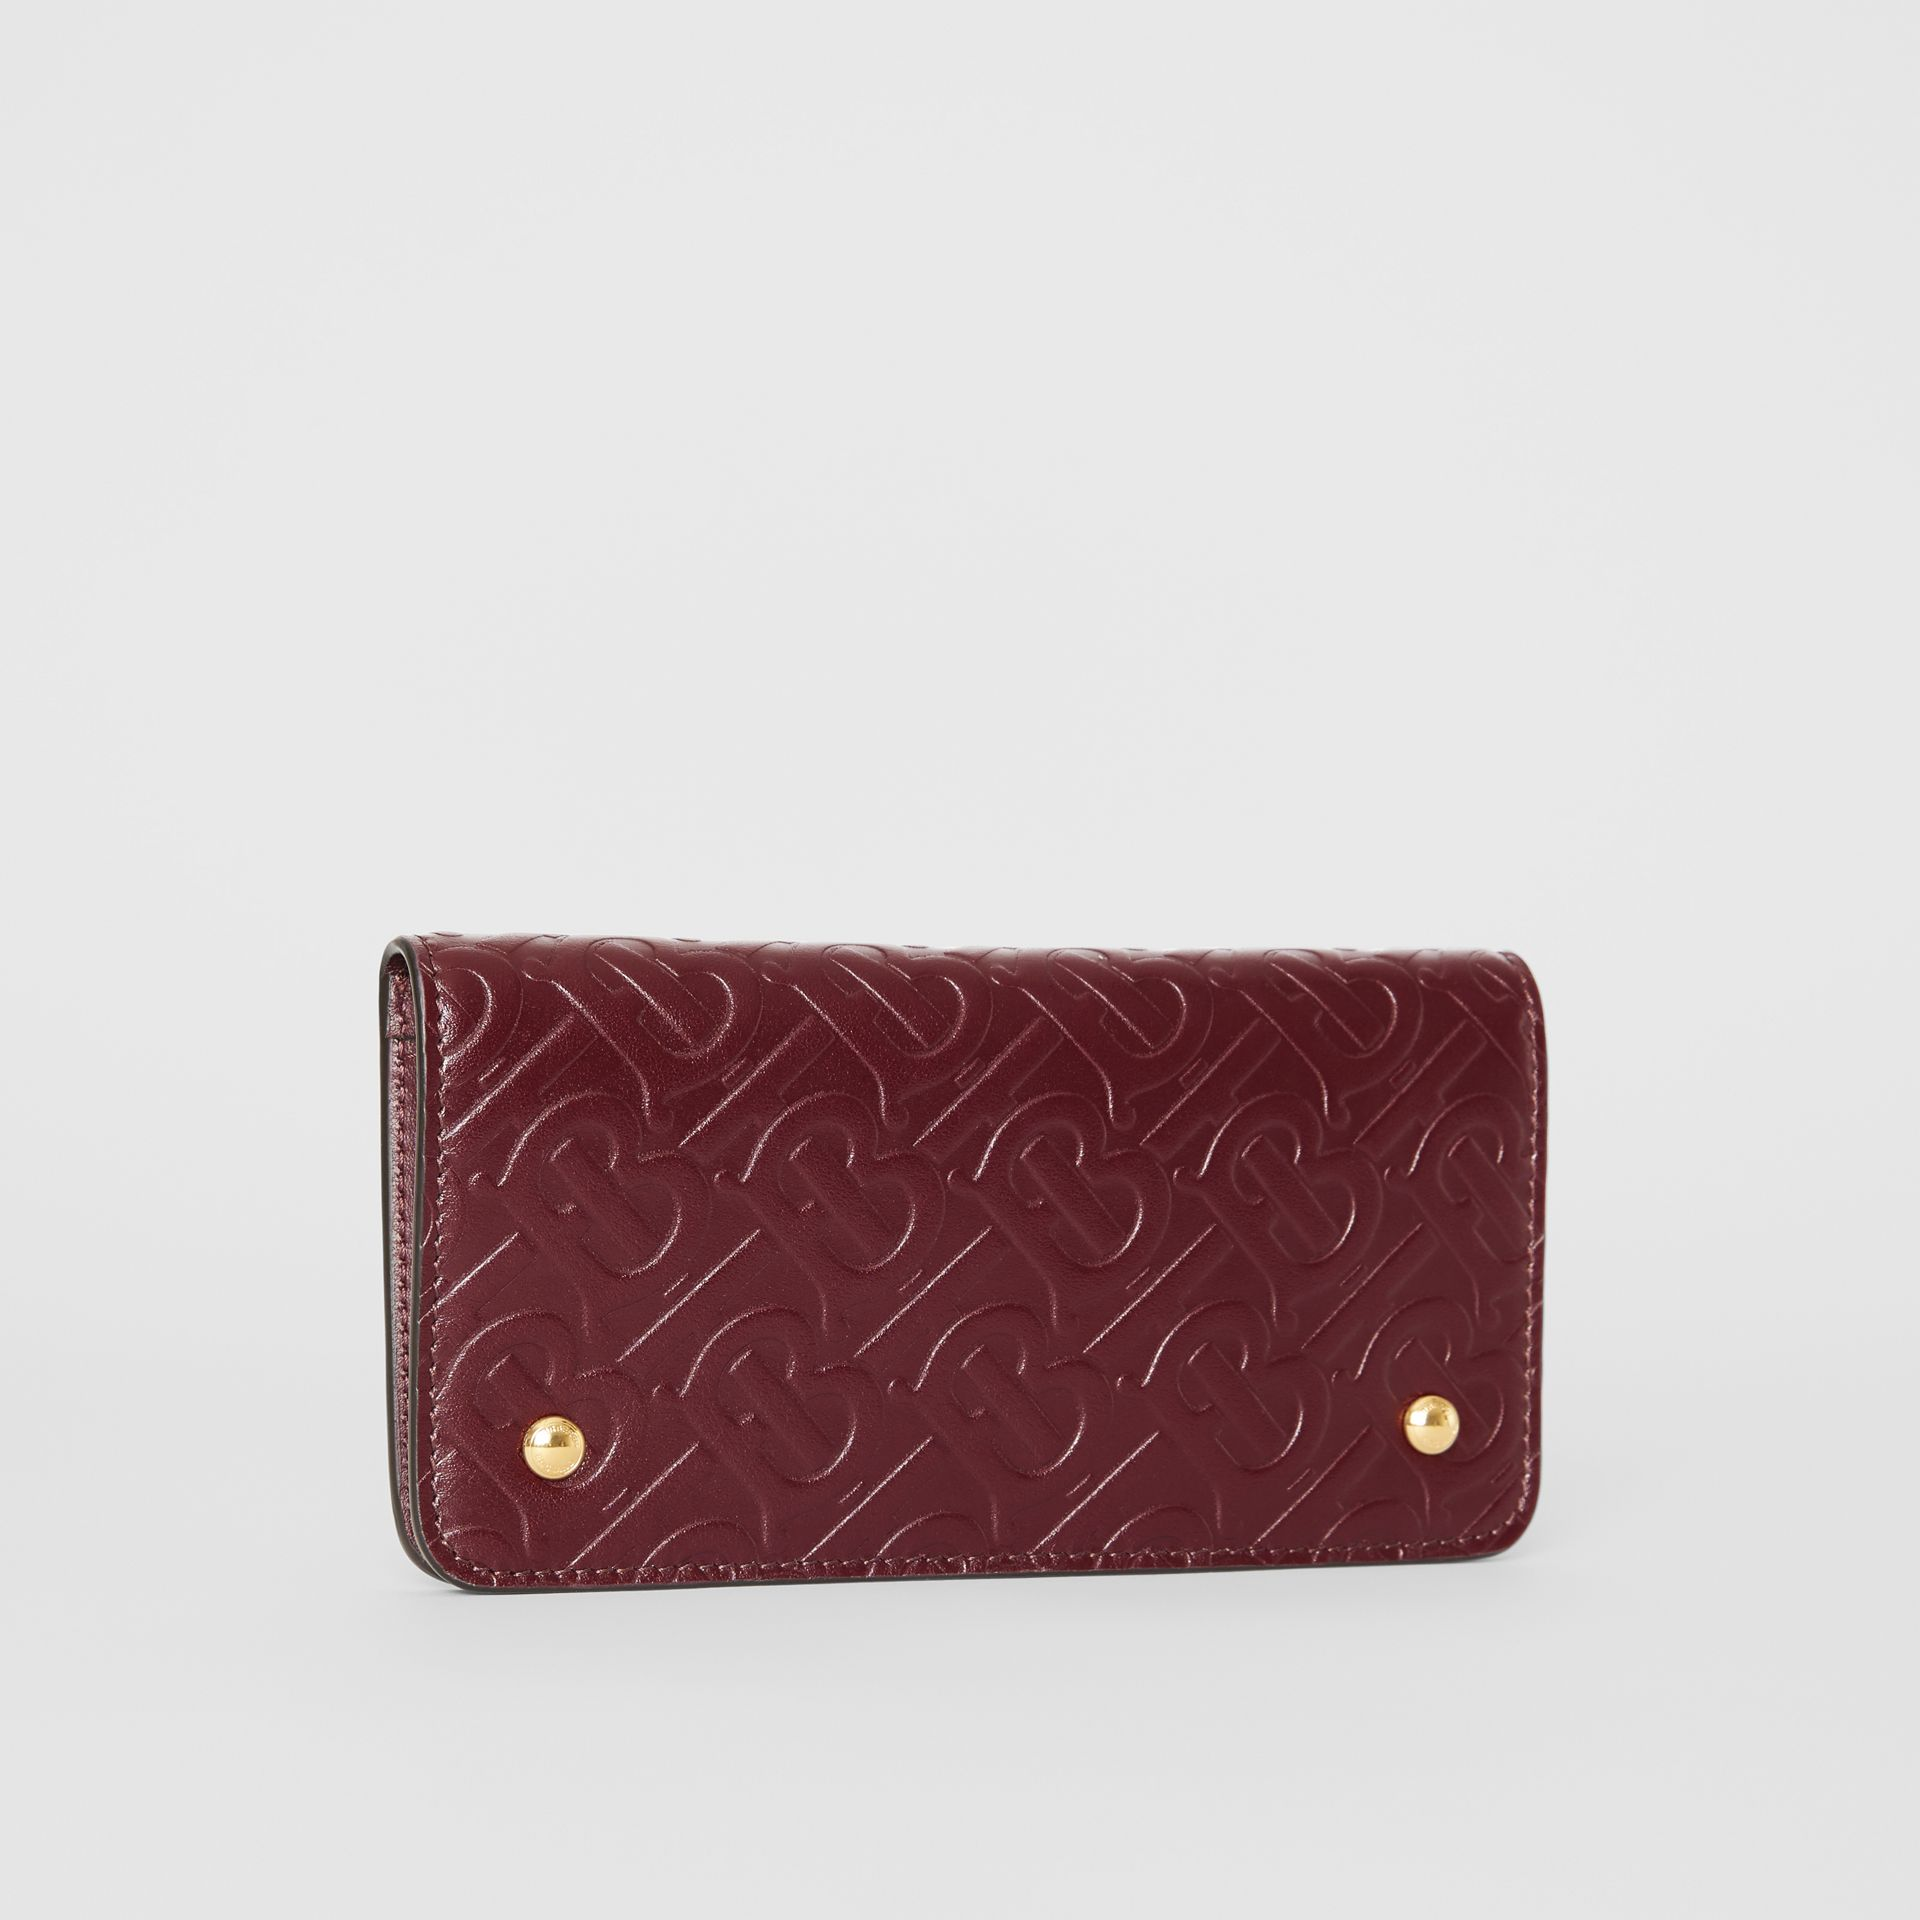 Monogram Leather Phone Wallet in Oxblood - Women | Burberry - gallery image 4